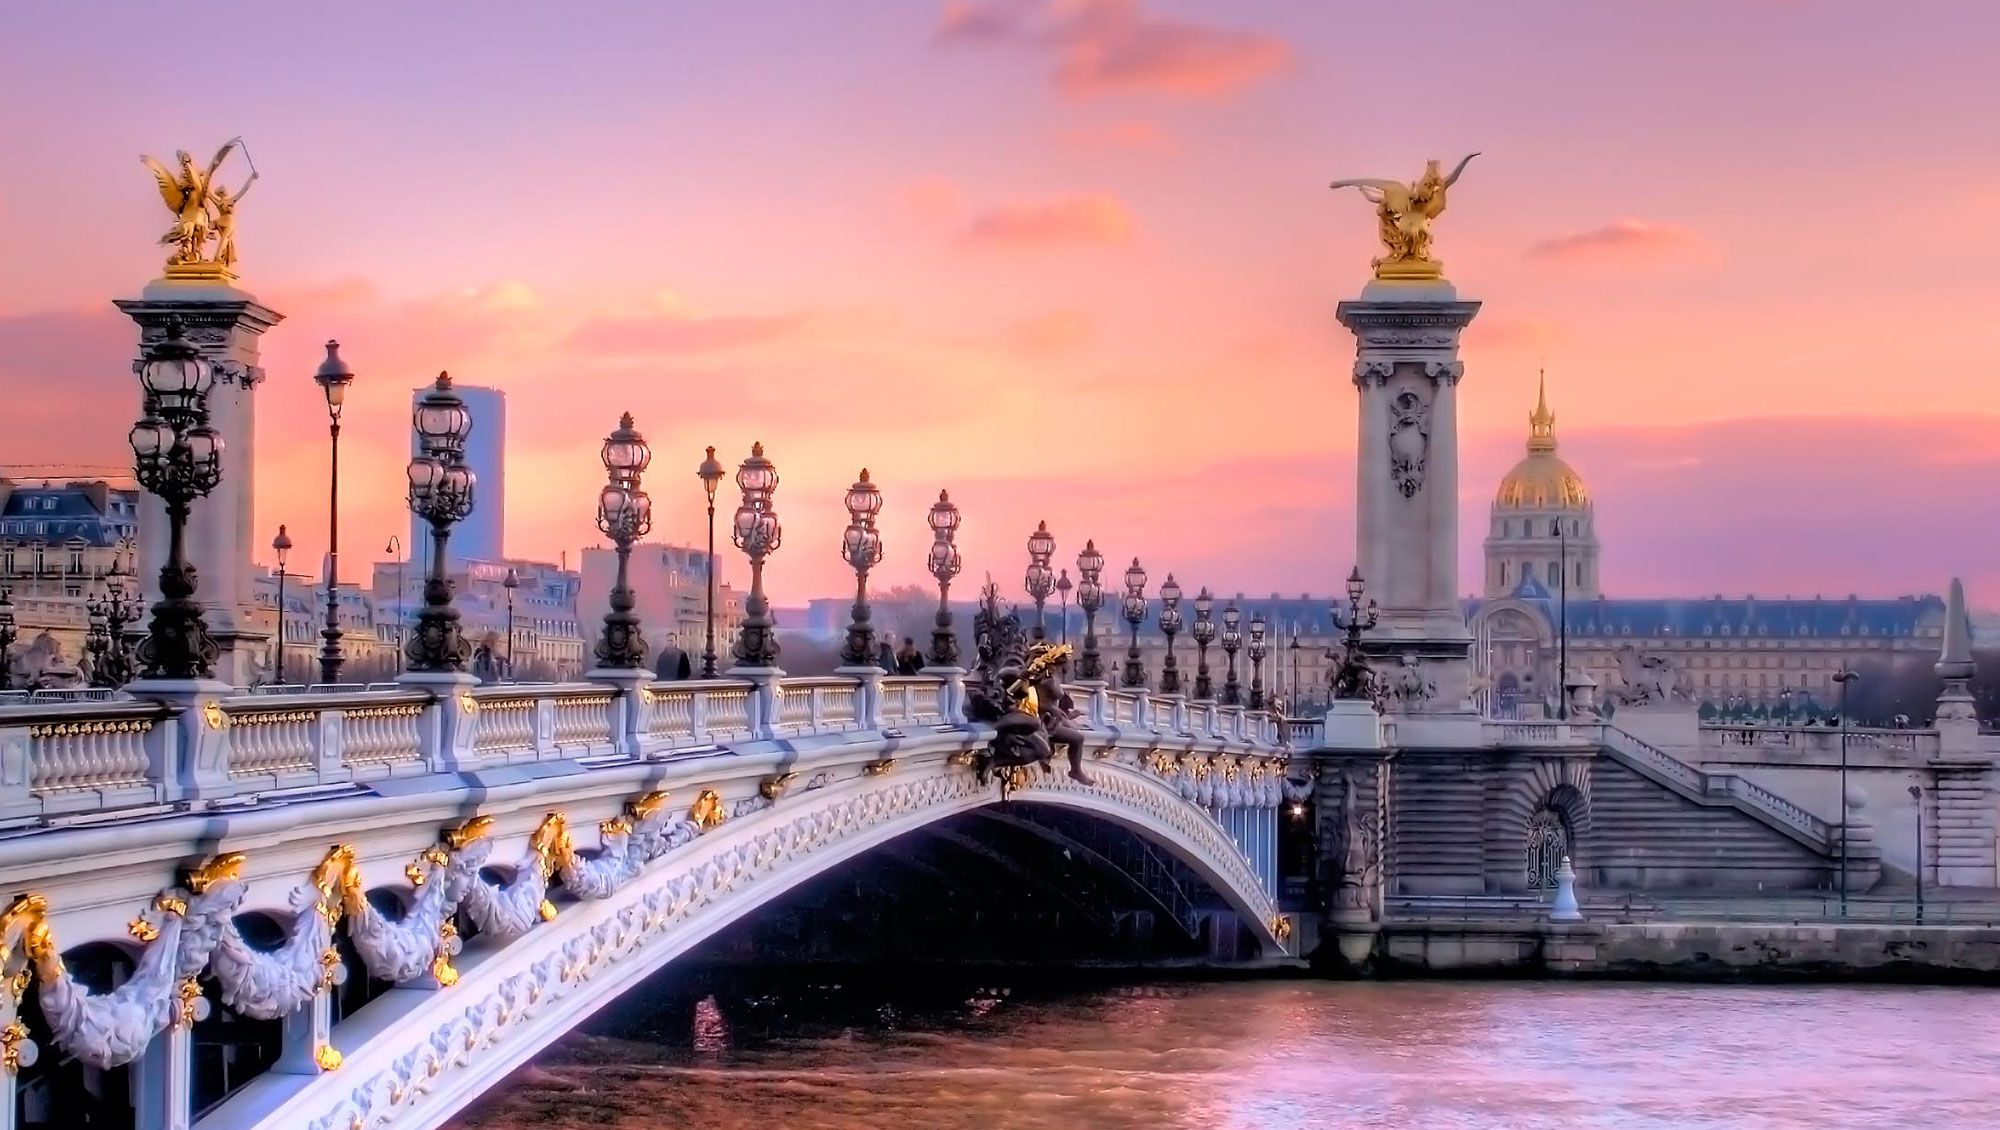 Paris Hd Wallpaper Posted By Zoey Thompson